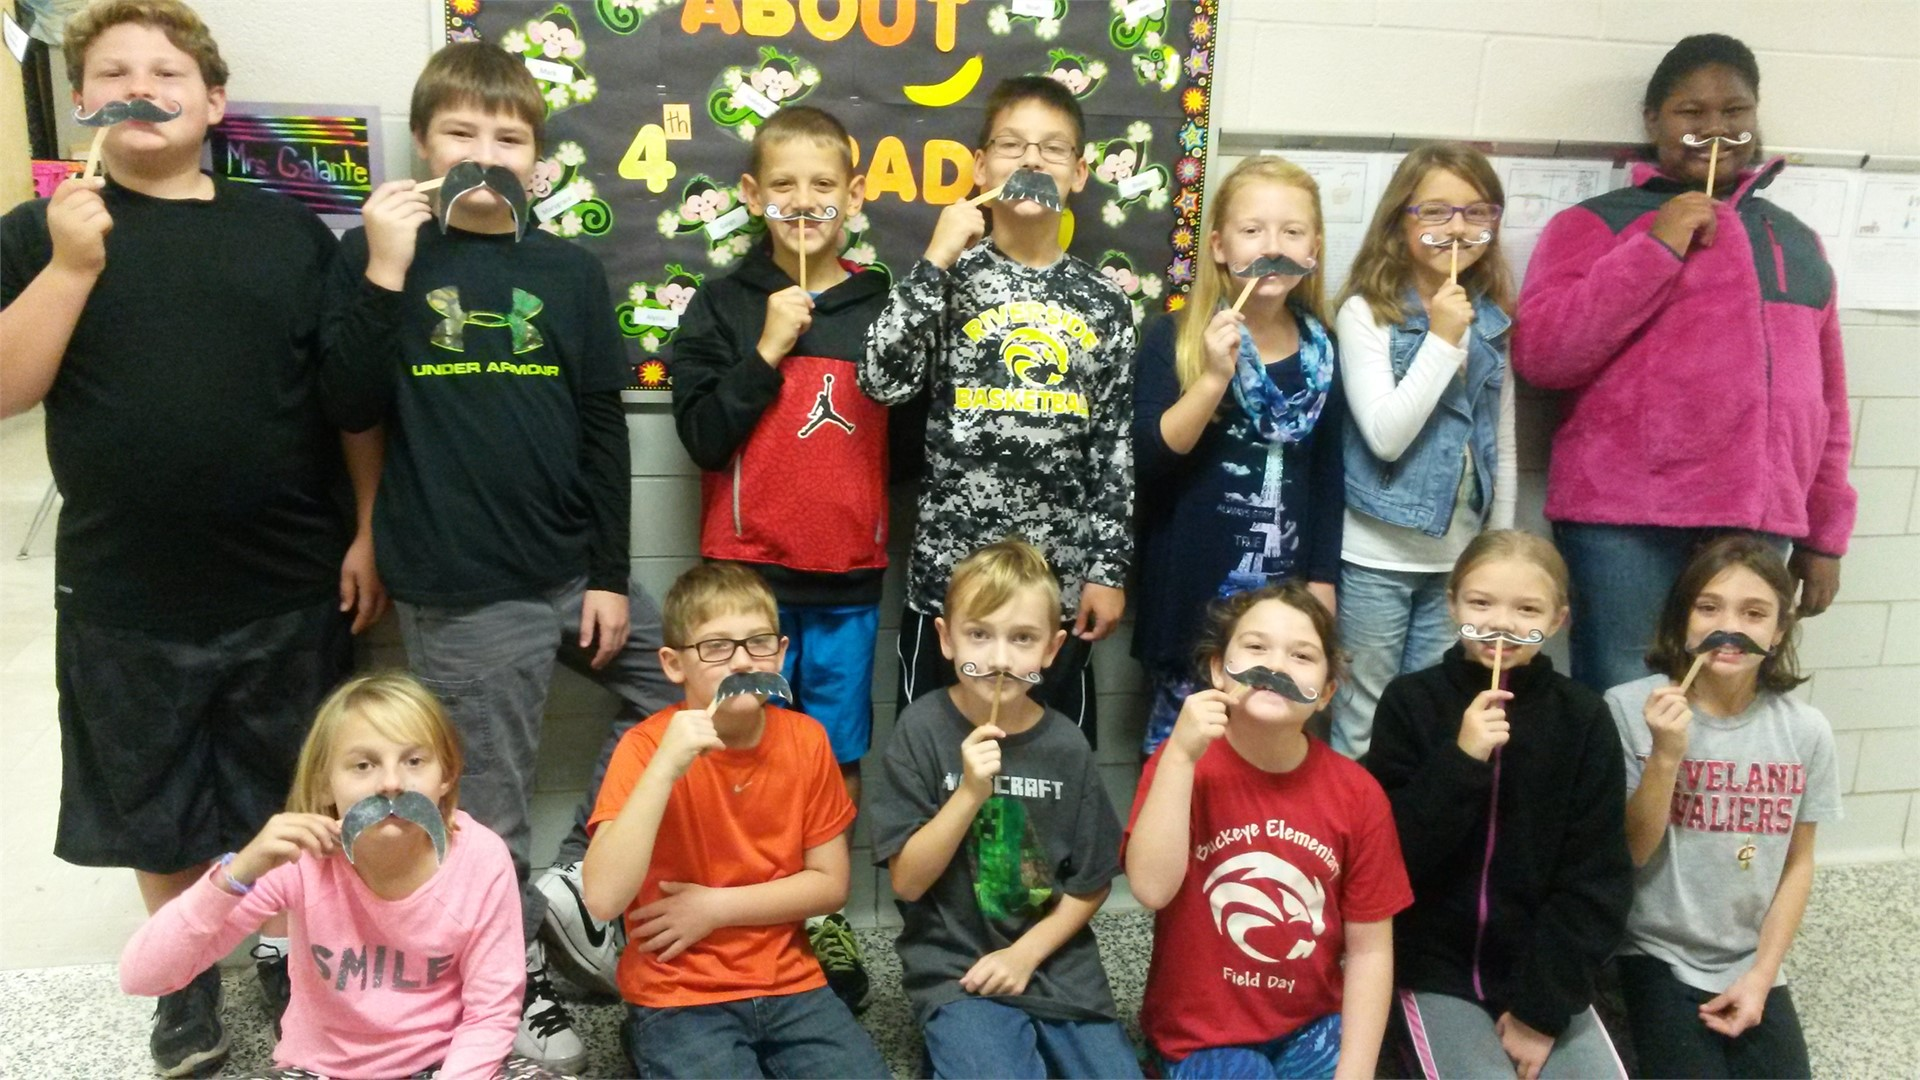 Buckeye Year of Caring - Movember!